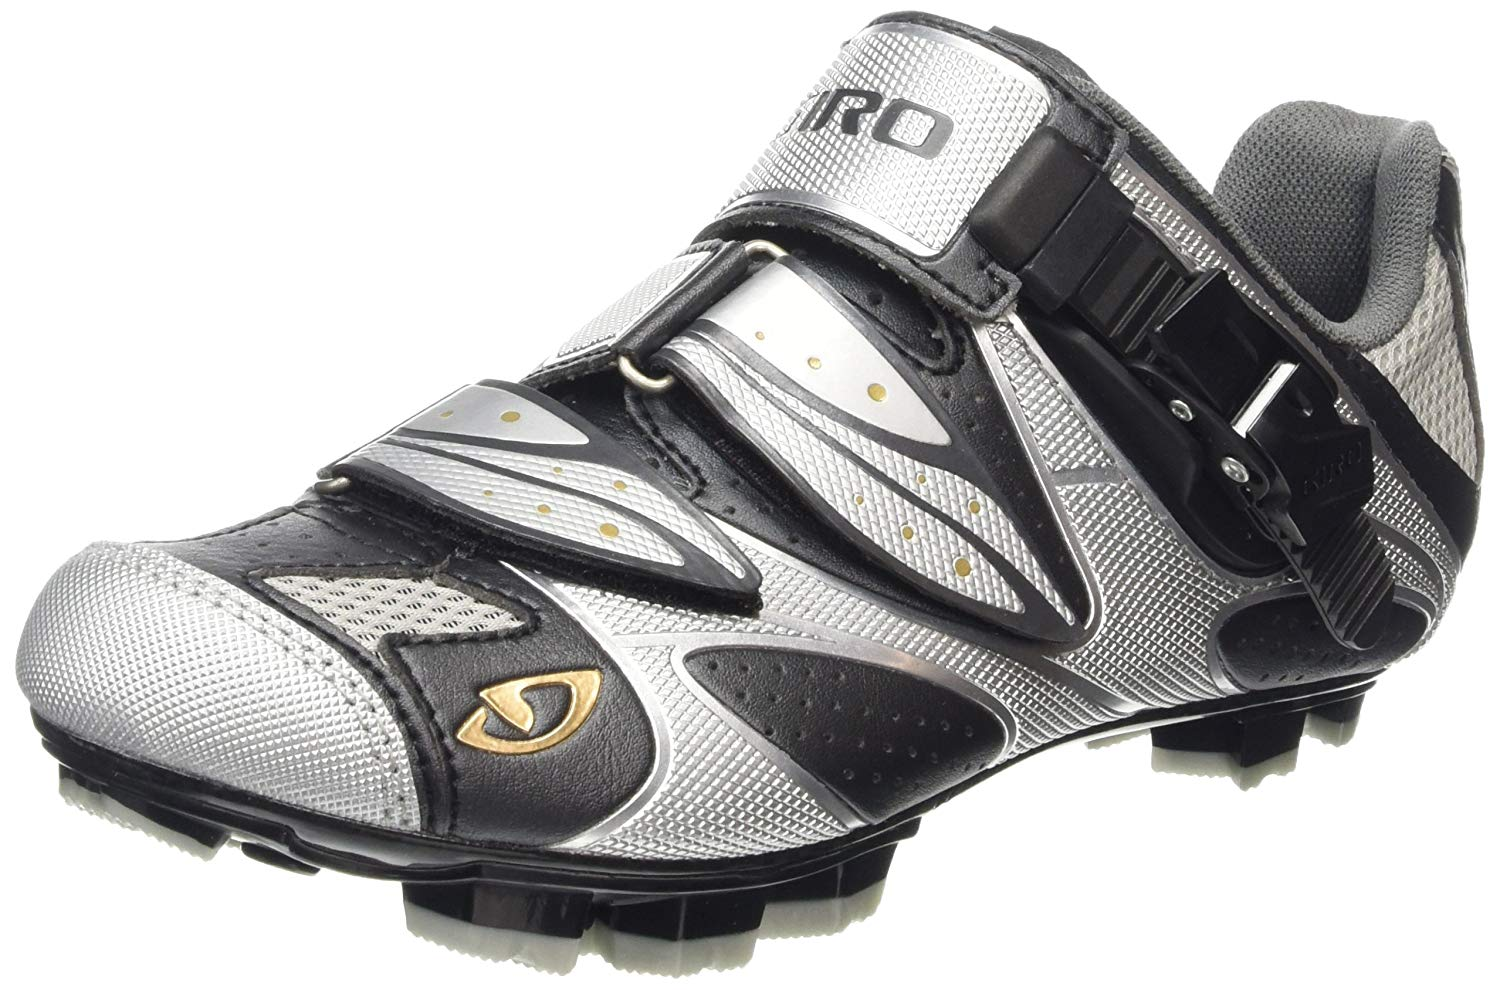 Giro 2012 Women's Sica Mountain Bike Shoes (Charcoal/Silver – 39)